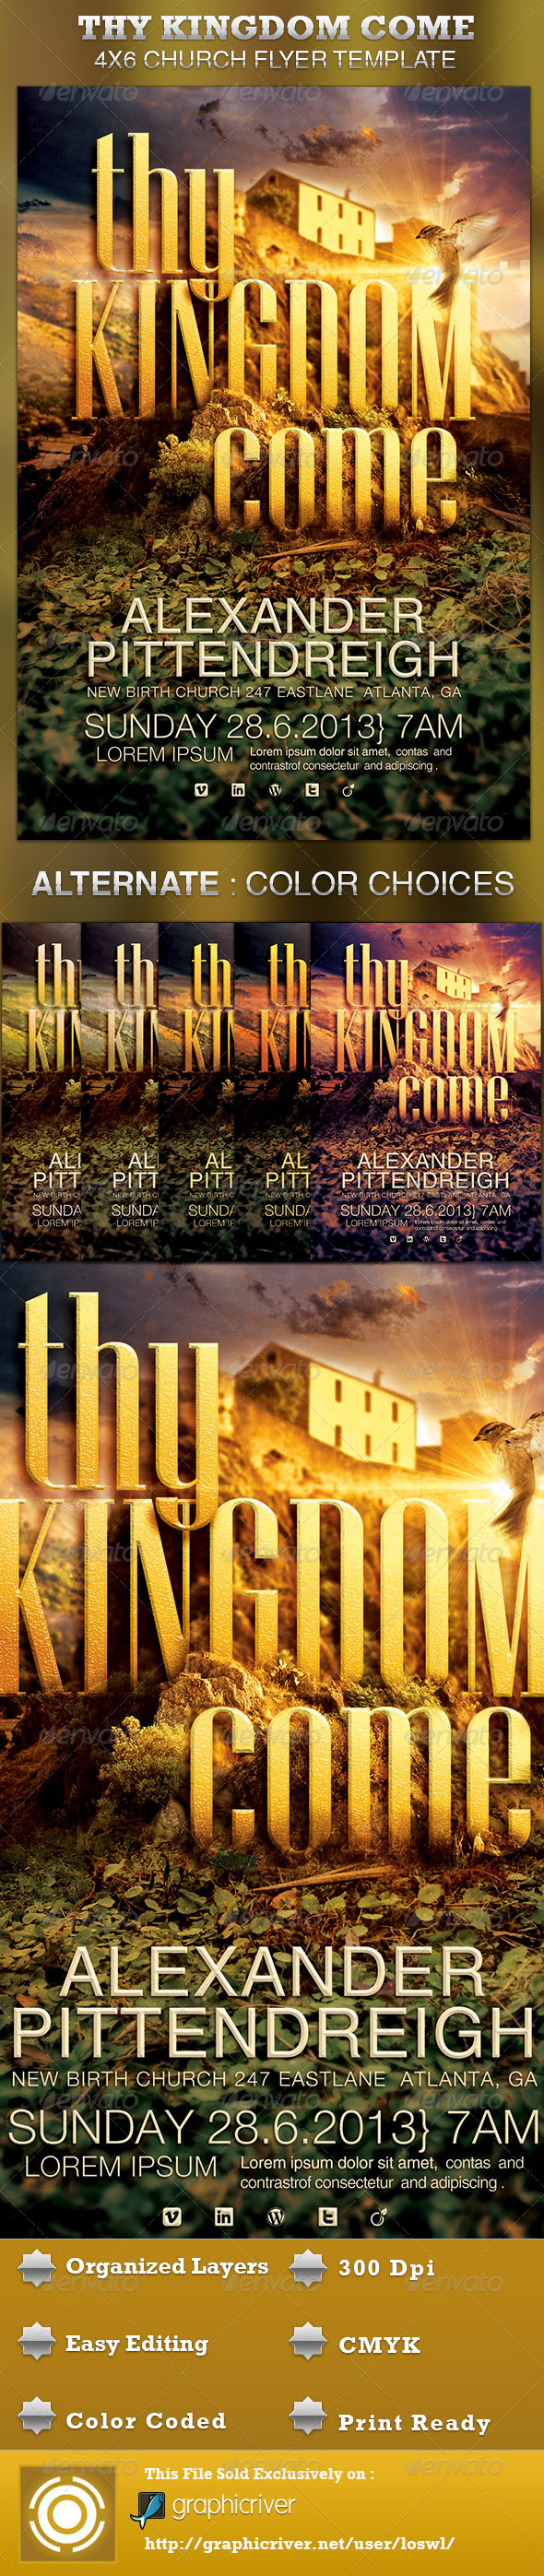 Thy Kingdom Come Church Flyer Template - Church Flyers